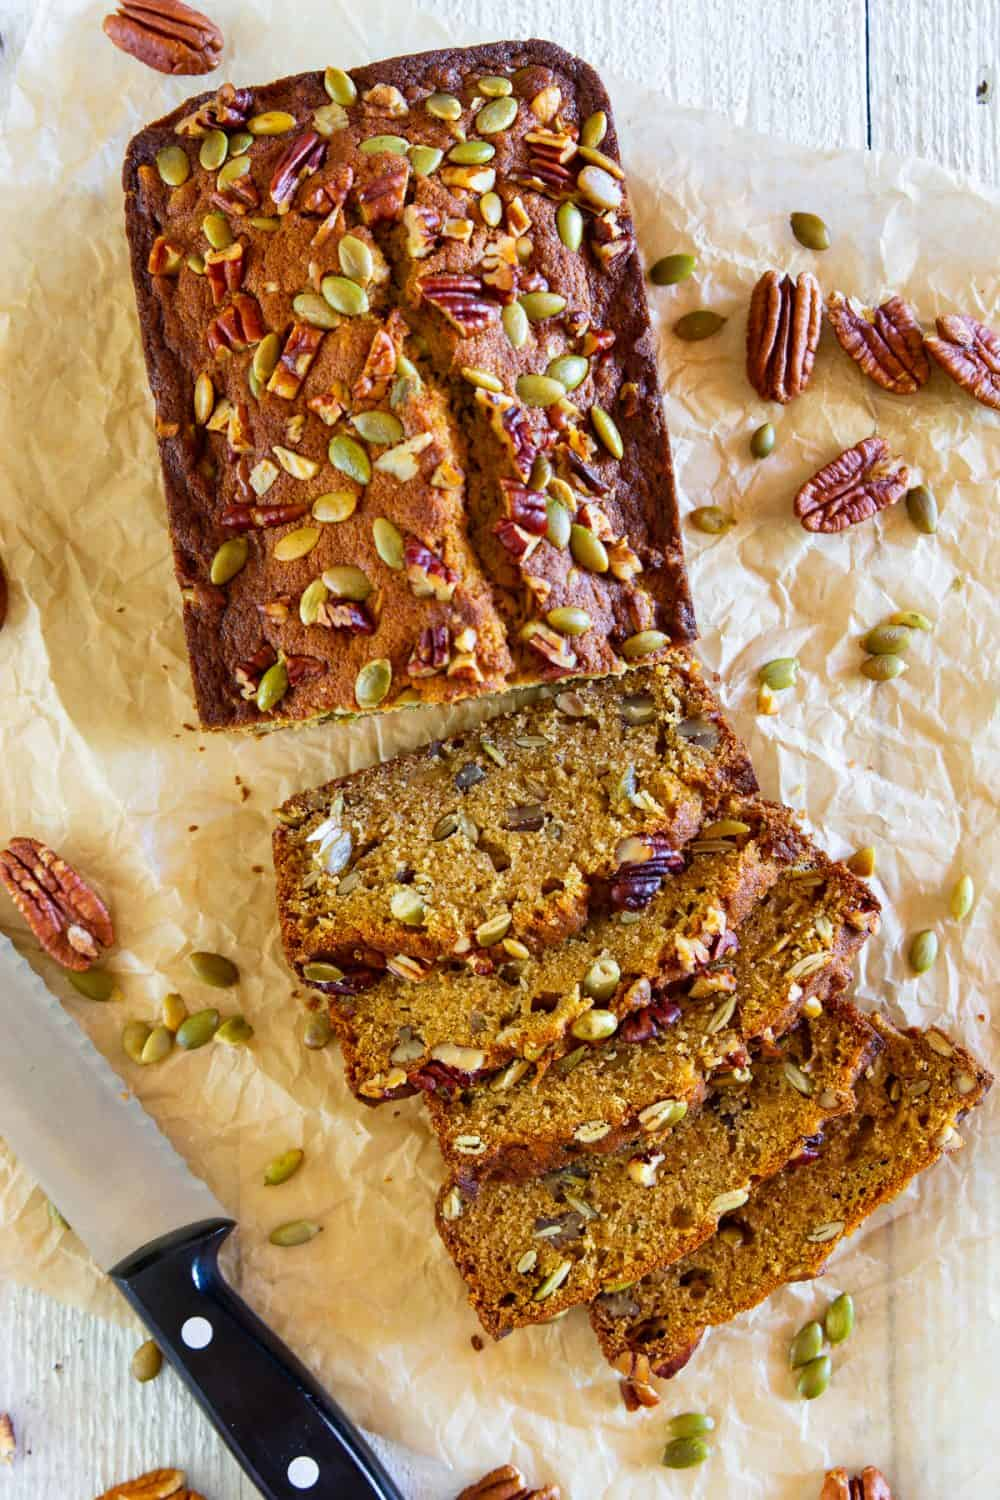 an overhead image of a baked pumpkin bread loaf with pecans and pumpkin seeds sprinkled on top